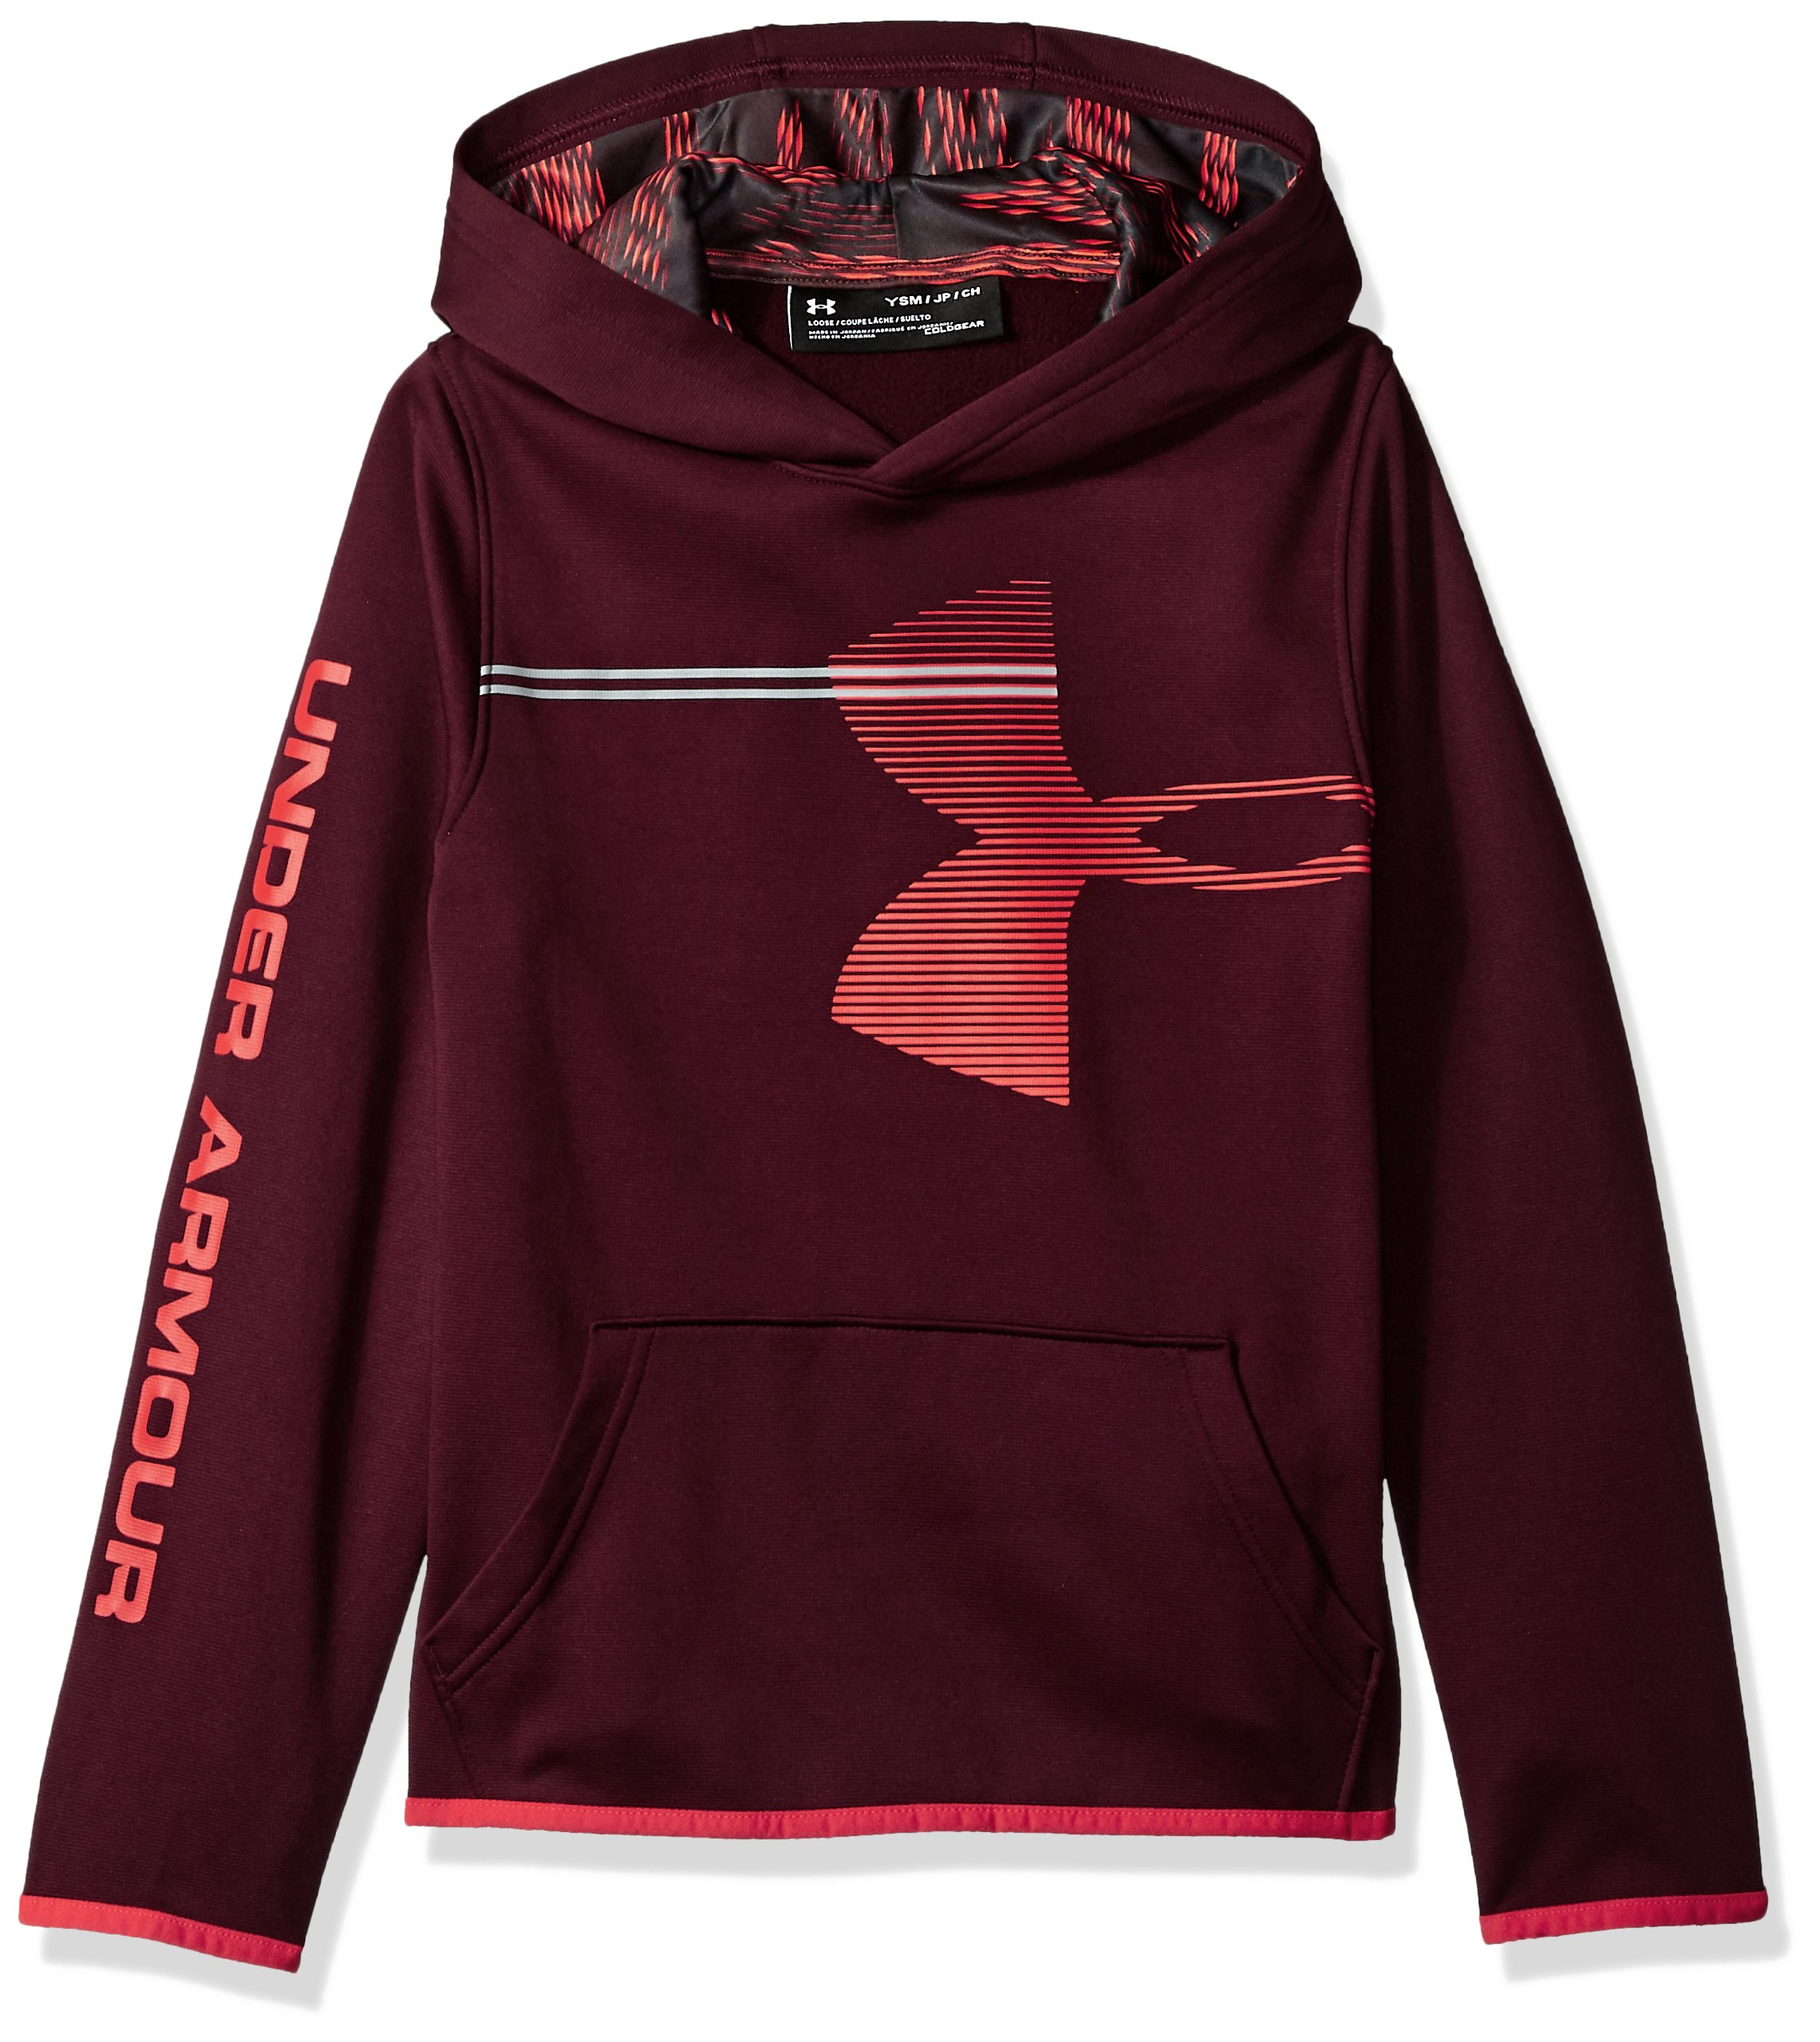 Under Armour Boys' Armour Fleece Hoodie, Dark Maroon (601)/Radio Red, Youth Small by Under Armour